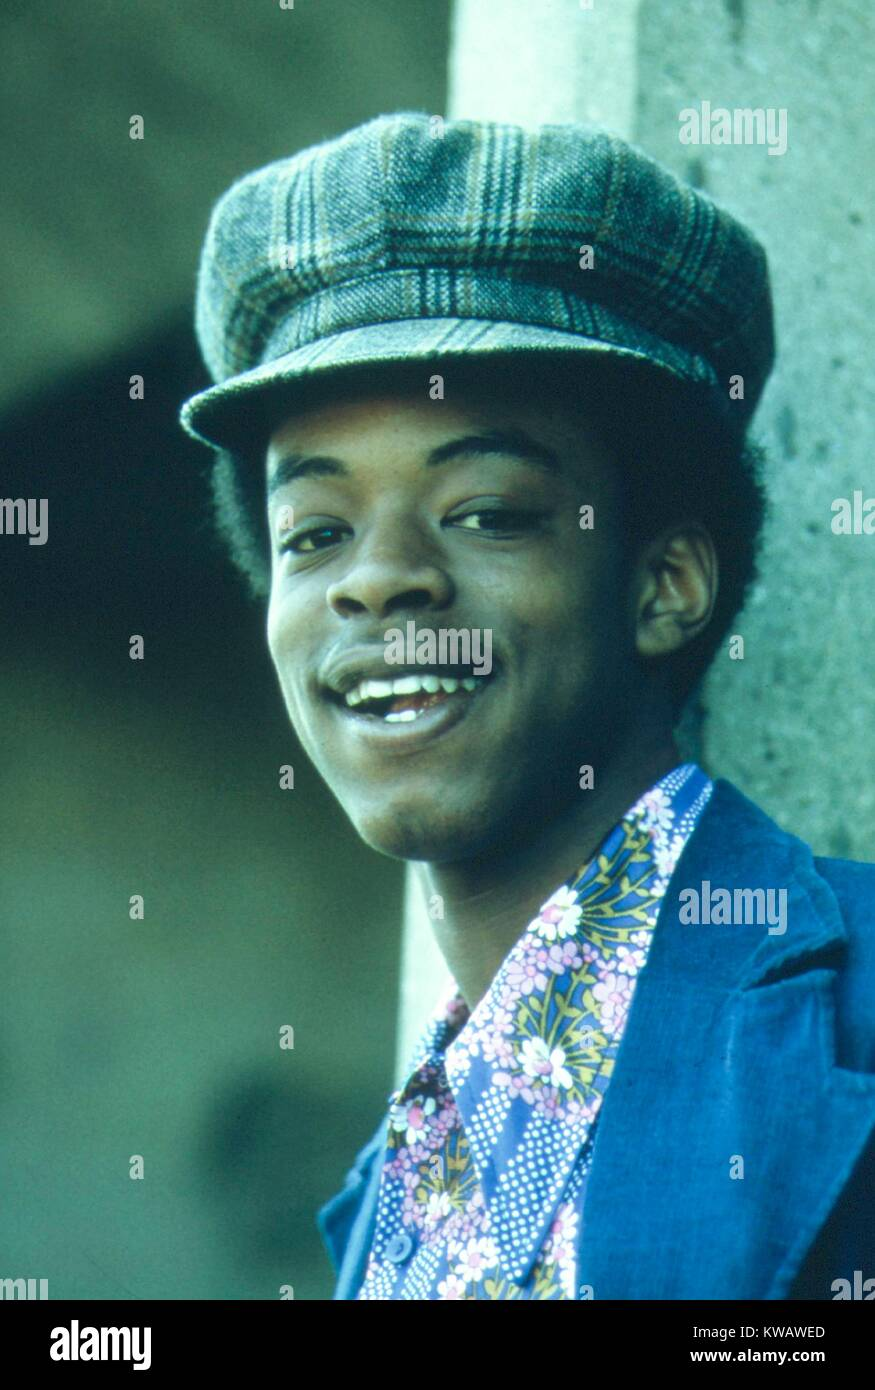 Newsboy Hat Stock Photos & Newsboy Hat Stock Images - Alamy